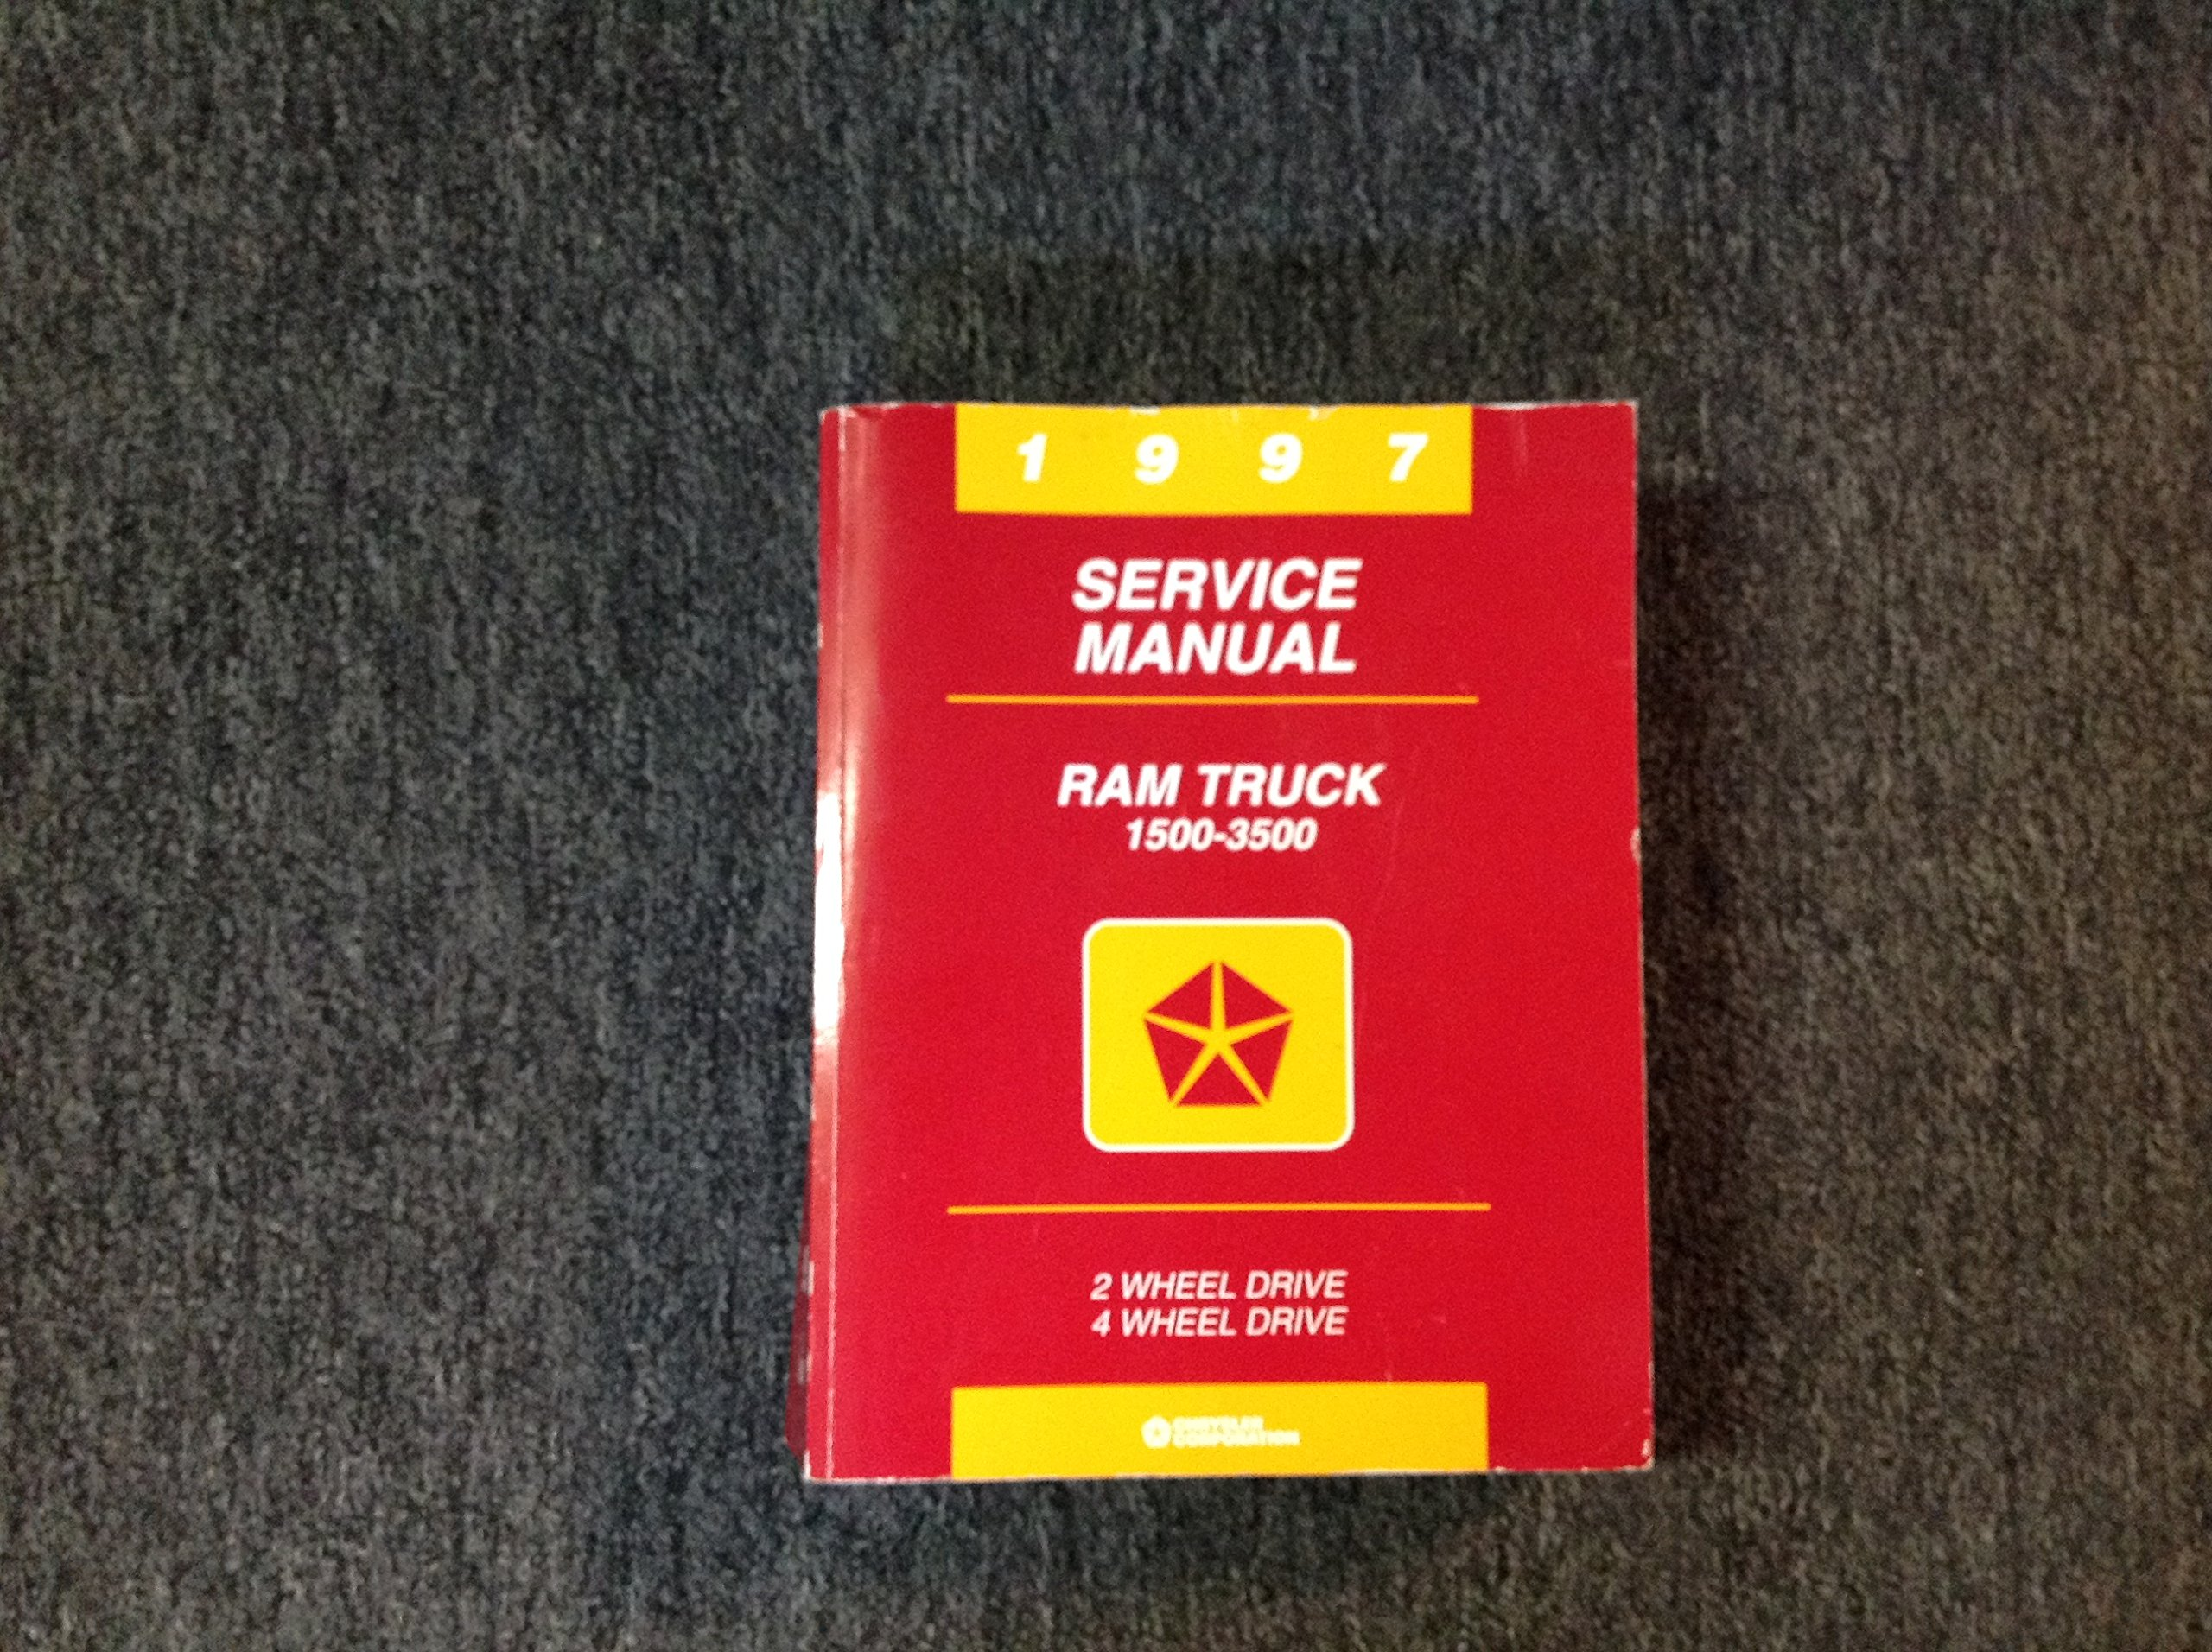 1997 Dodge Ram Truck Repair Shop Manual Original 1500-2500-3500 Paperback –  1997